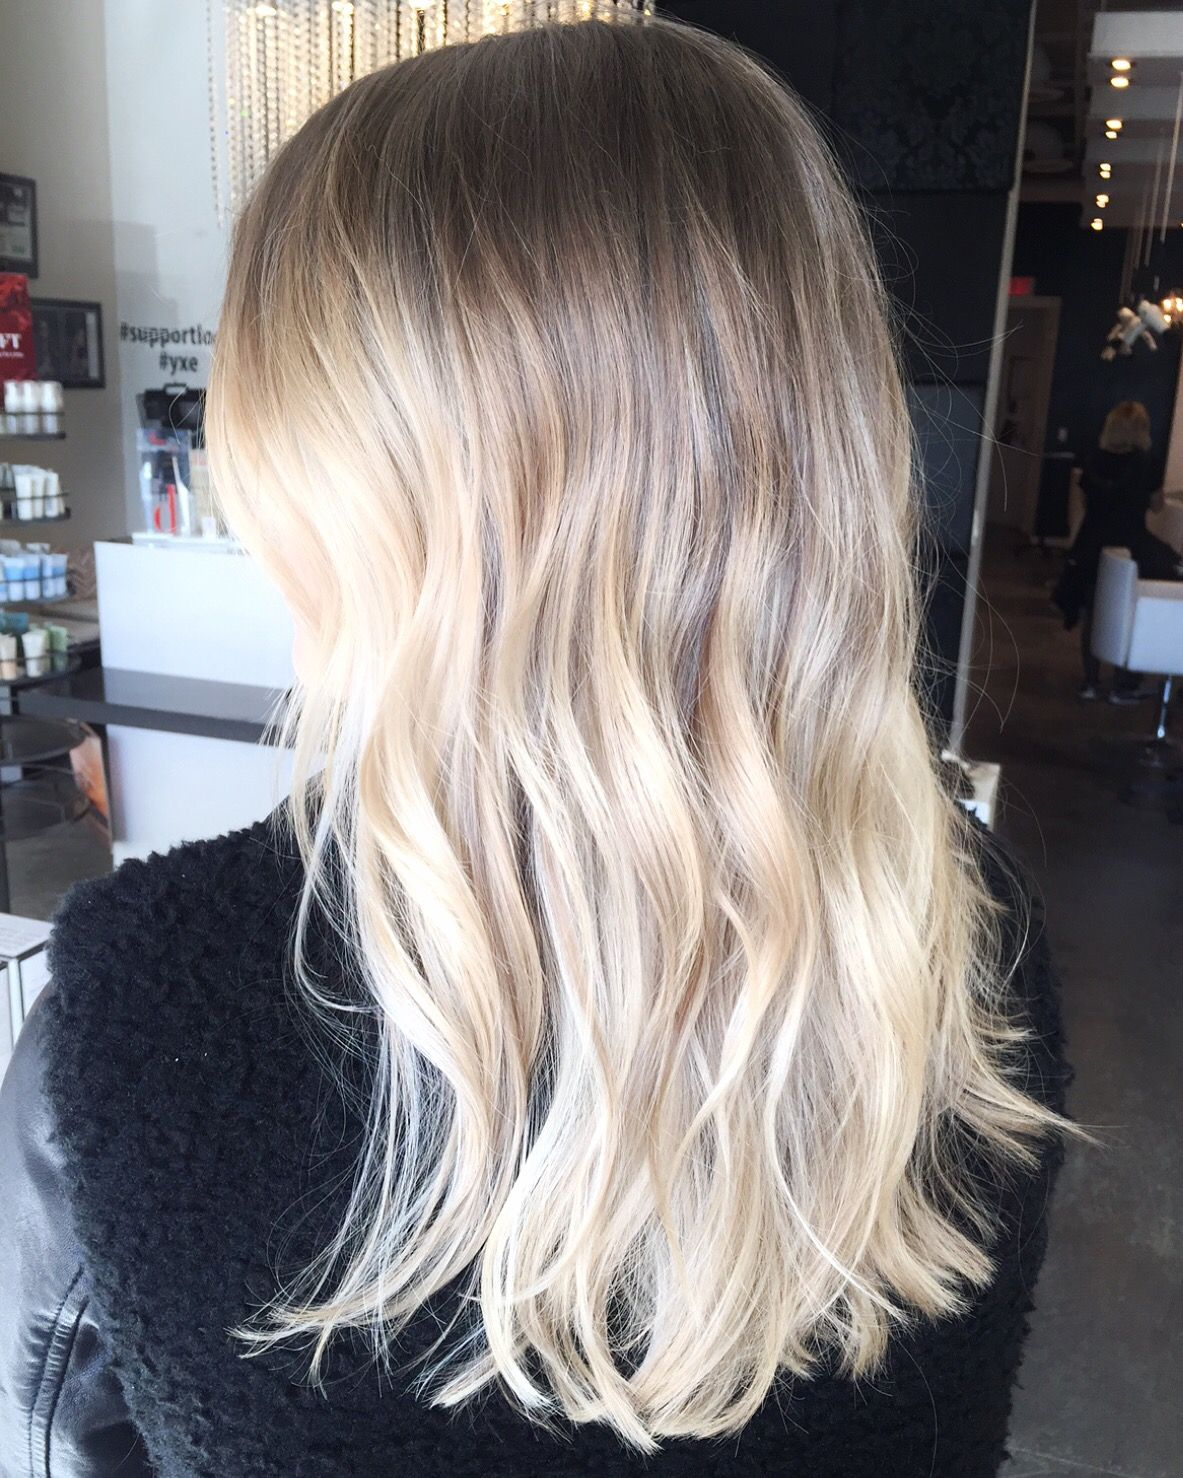 Beautiful Blonde Balayage Ombre With Blended Highlights And A